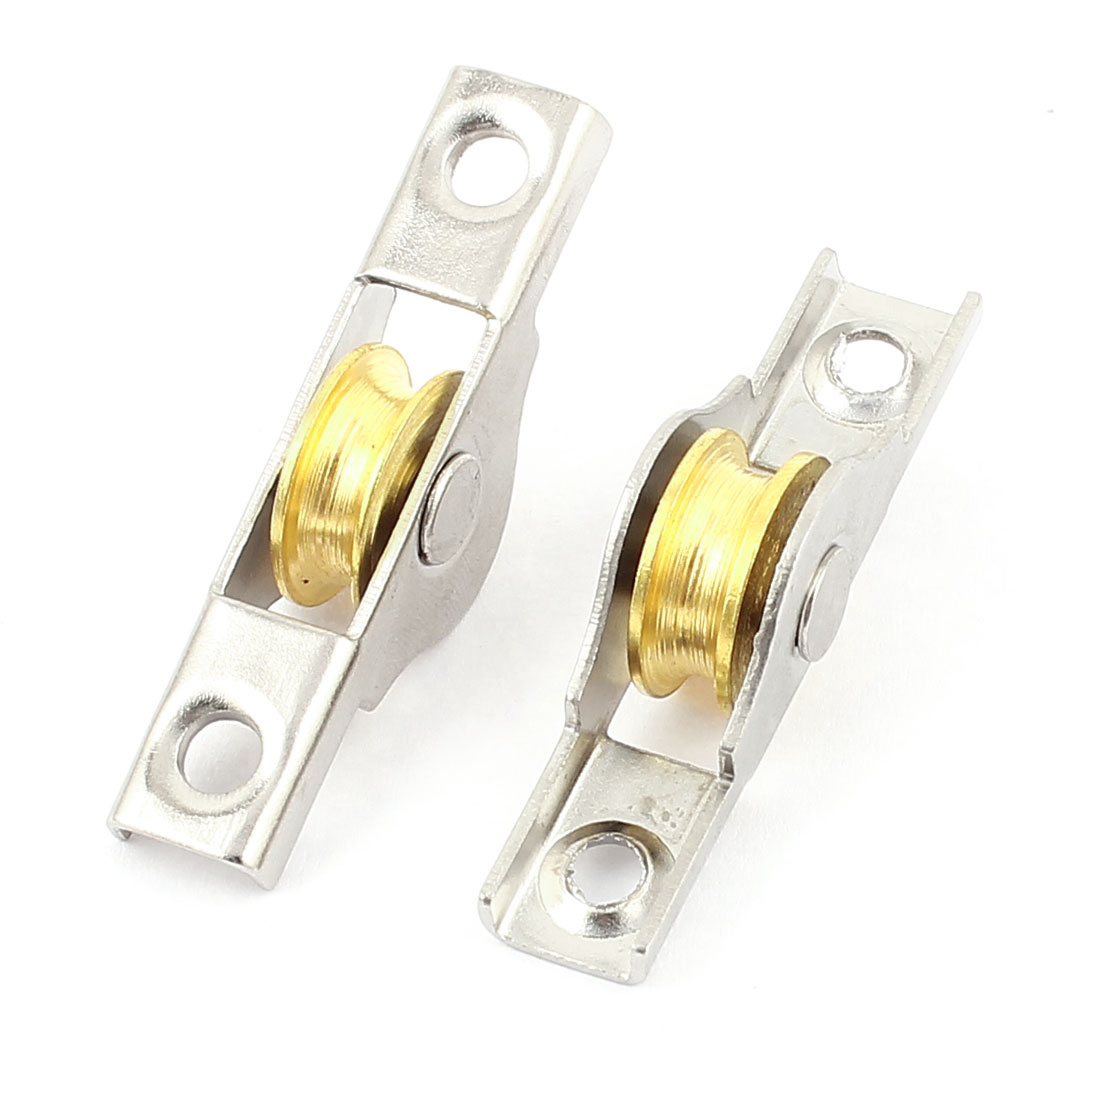 2 Pcs 4mm Slot 16mm Diameter Wheel Sliding Sash Doors Single Roller Axle Window Pulley 50mm Long